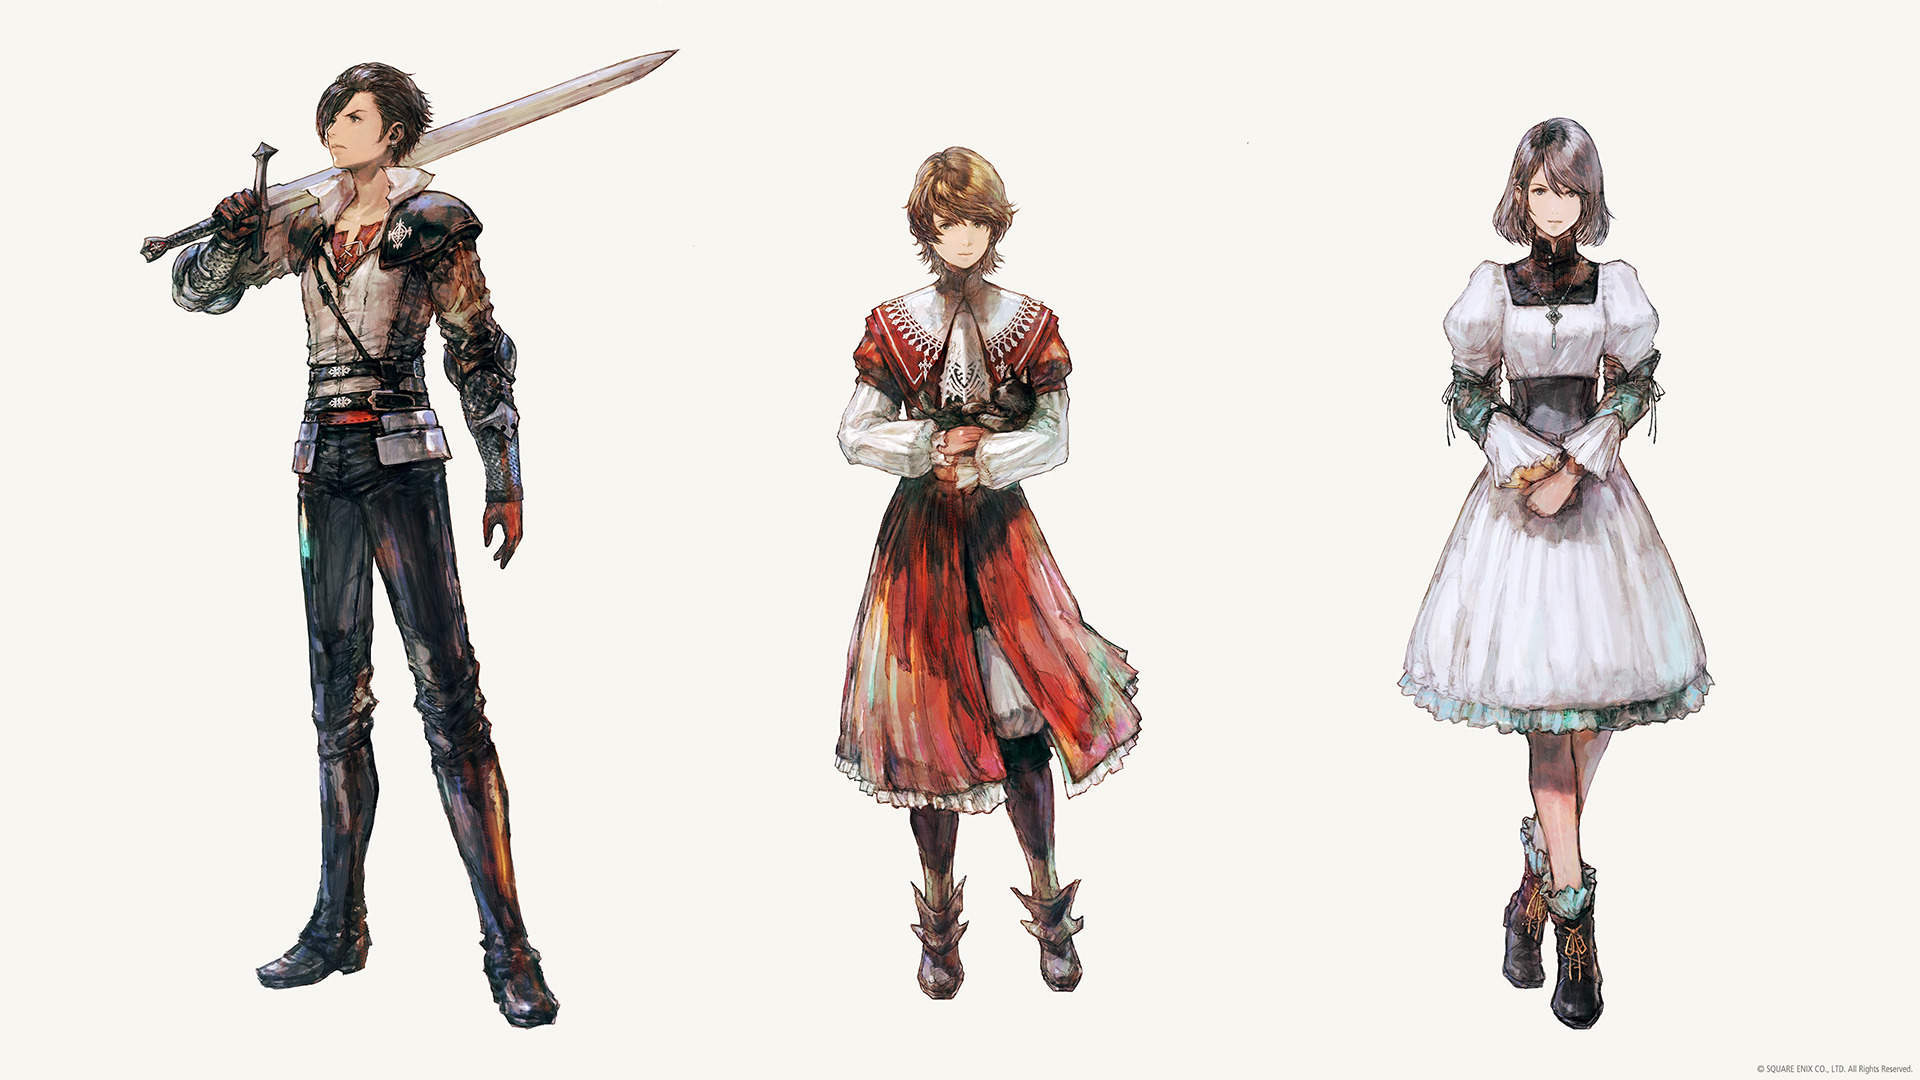 Clive, Joshua, and Jill from Final Fantasy 16